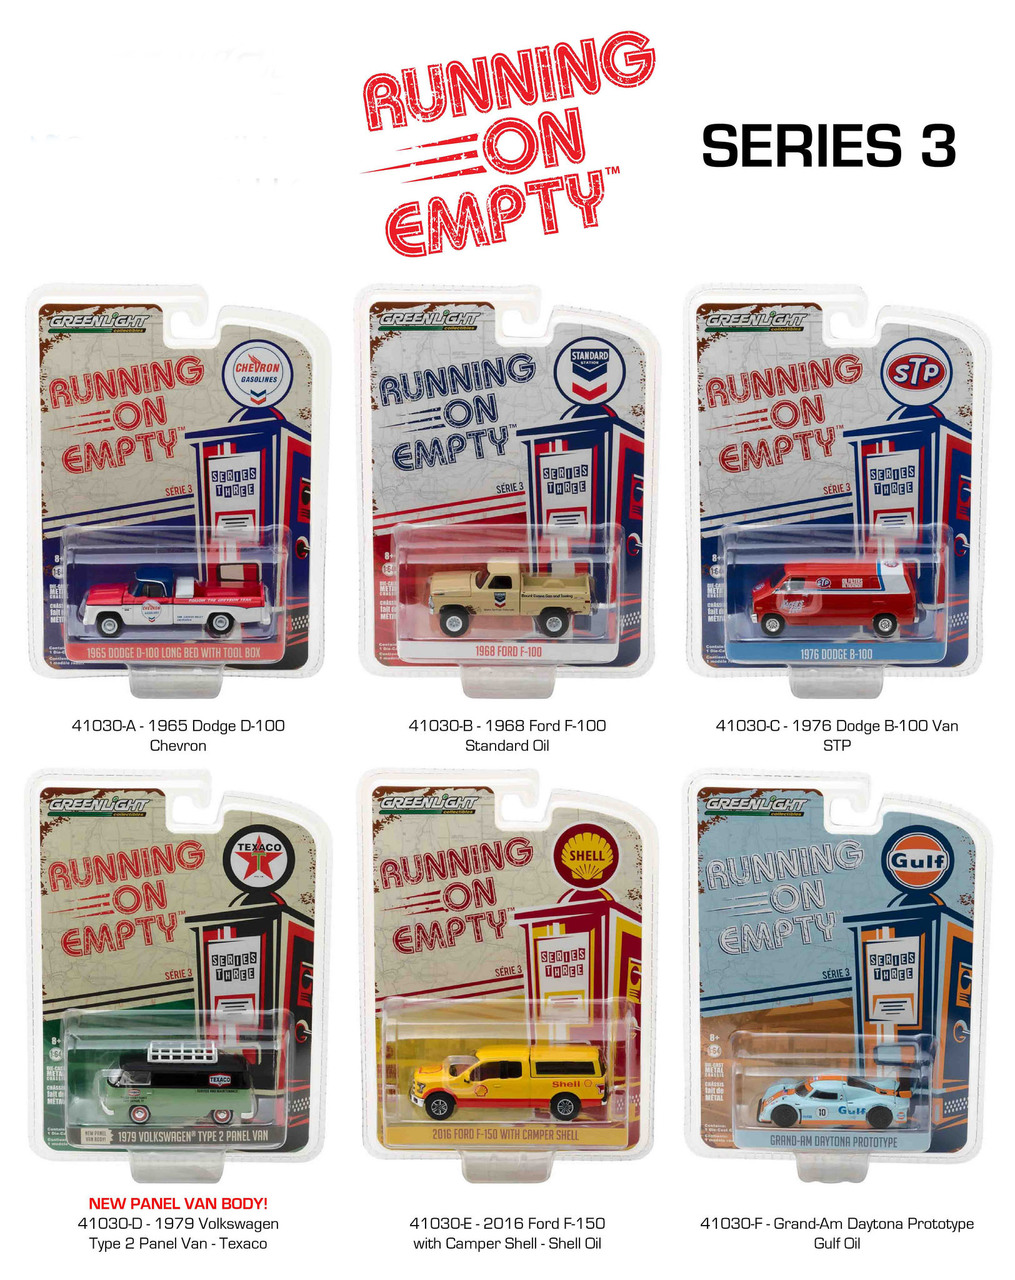 Running on Empty Series 3 6pc Diecast Car Set 1/64 Diecast Model Cars by Greenlight